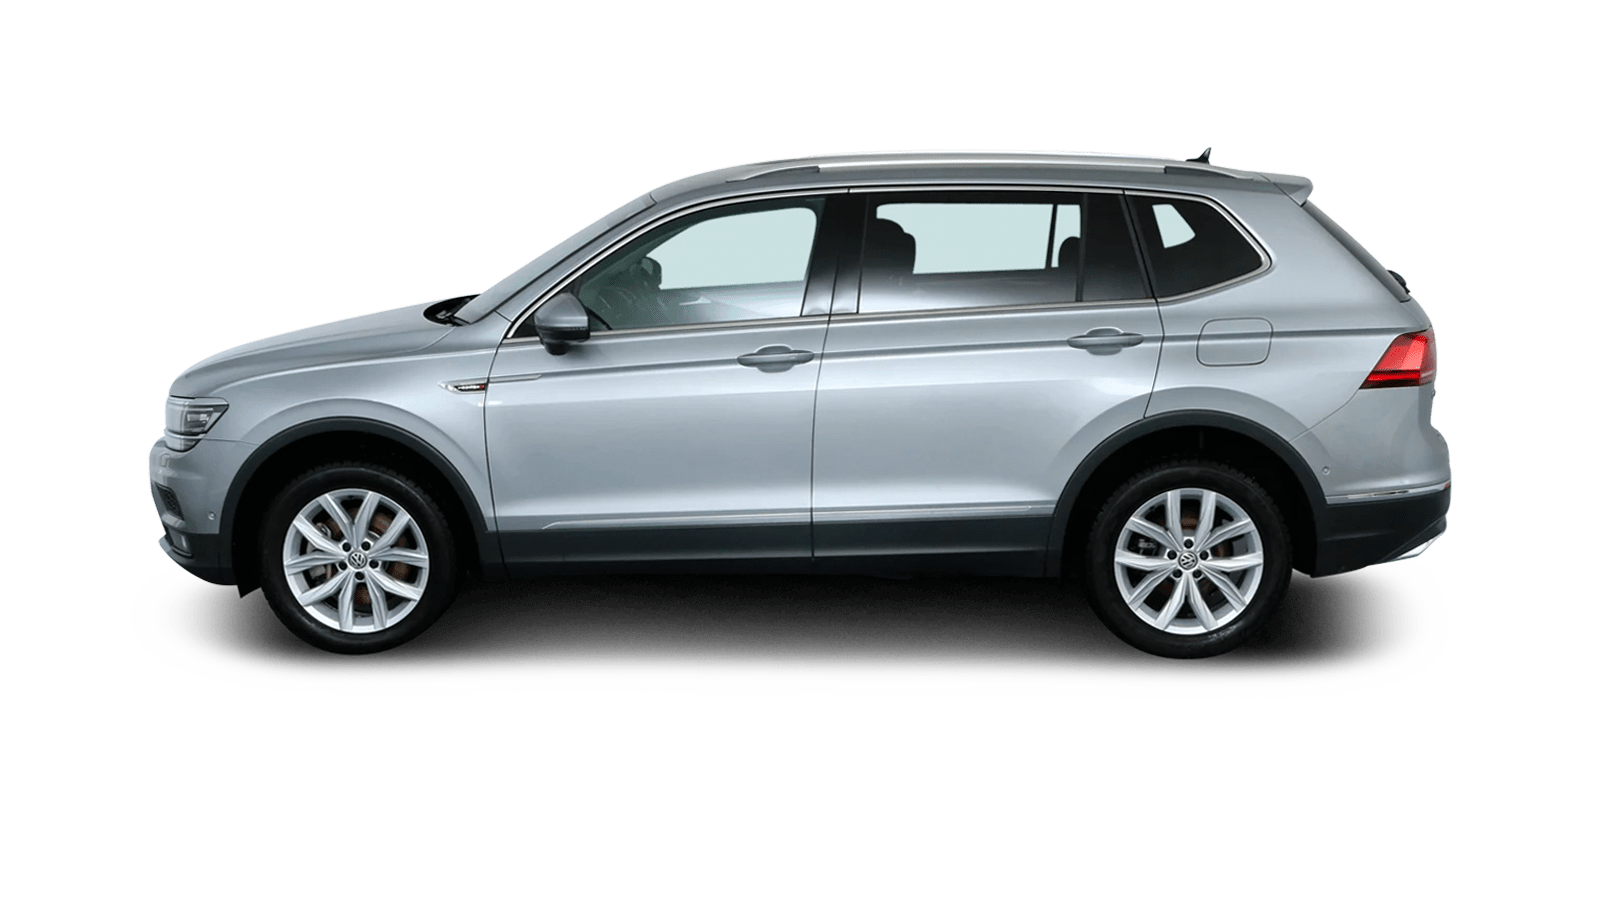 VW Tiguan Allspace Silver back - Clyde car subscription